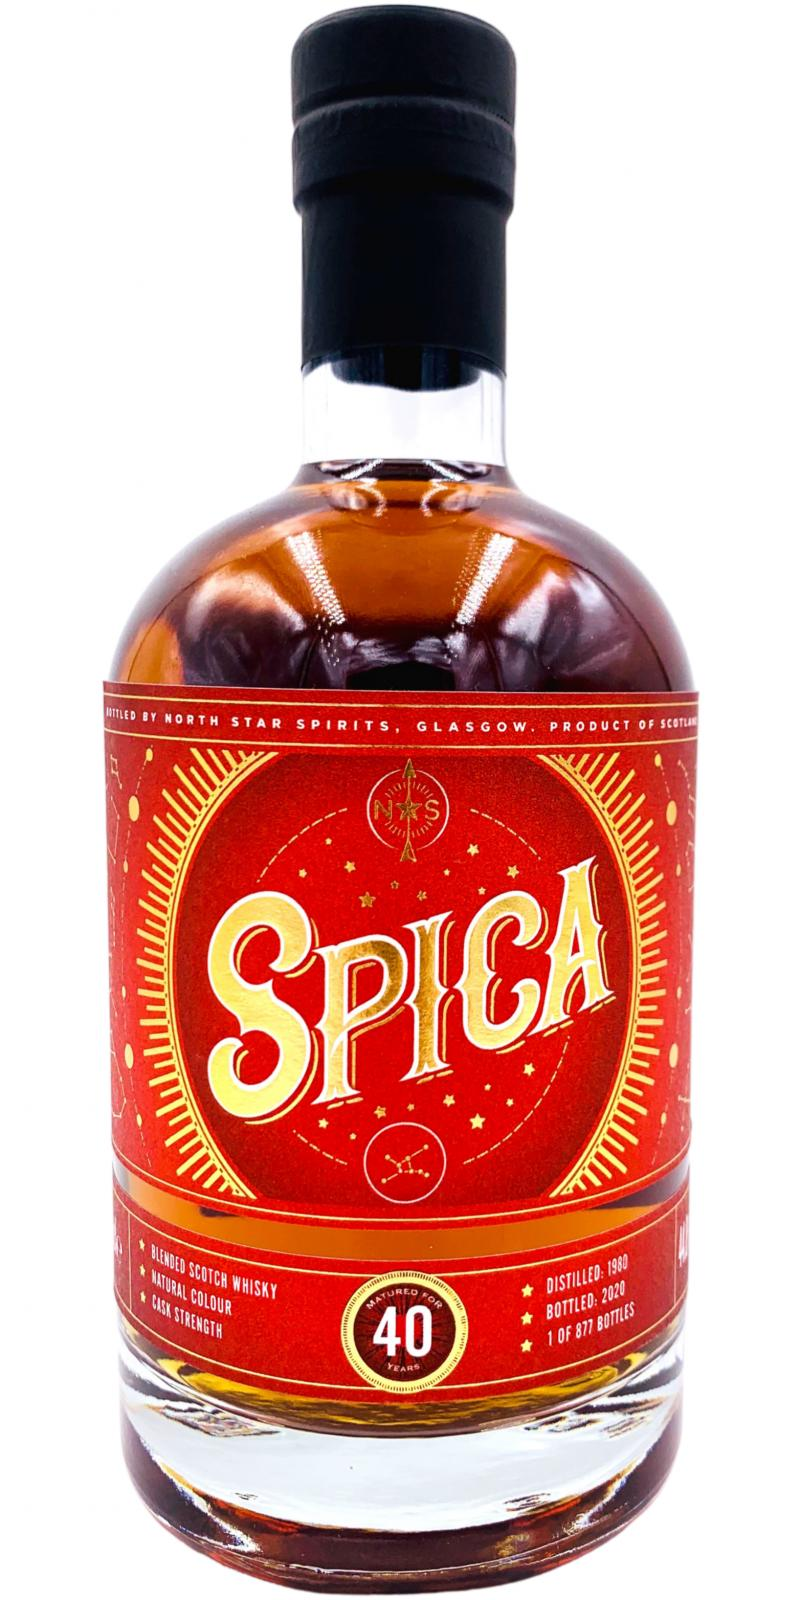 Spica 1980 NSS - Limited Edition No. 3